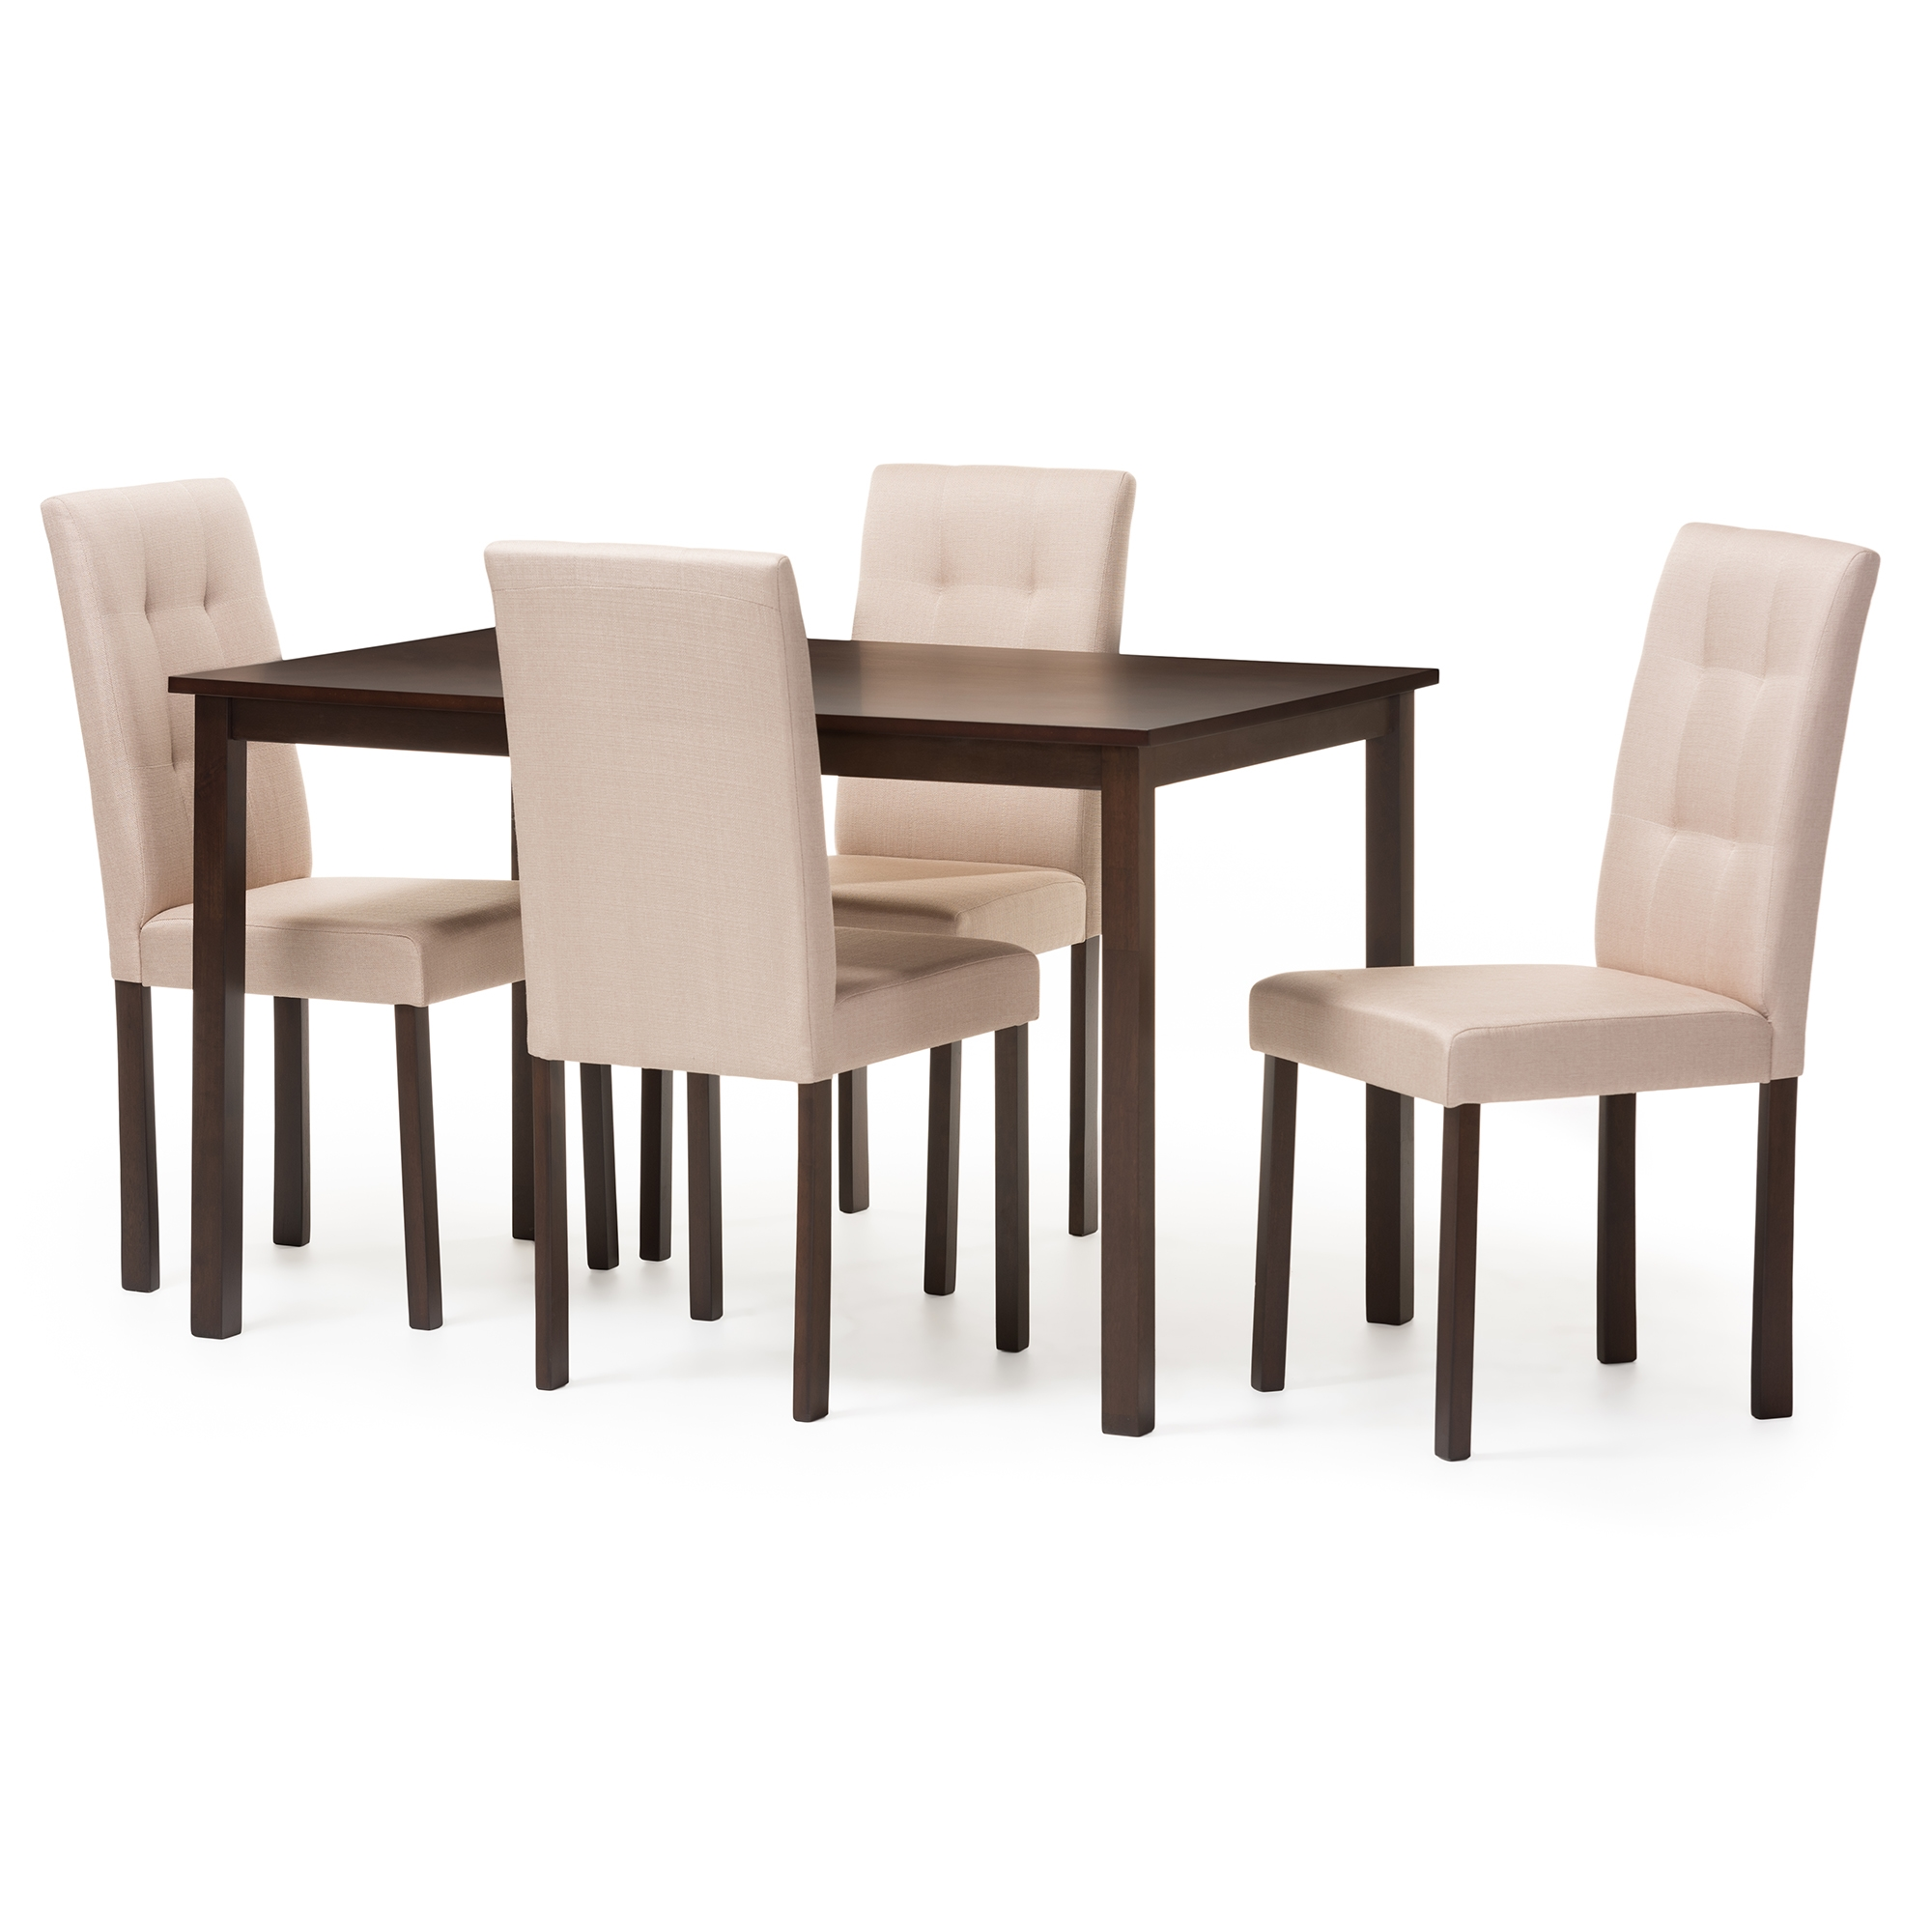 Superieur Baxton Studio Andrew Modern And Contemporary 5 Piece Beige Fabric  Upholstered Grid Tufting Dining Set